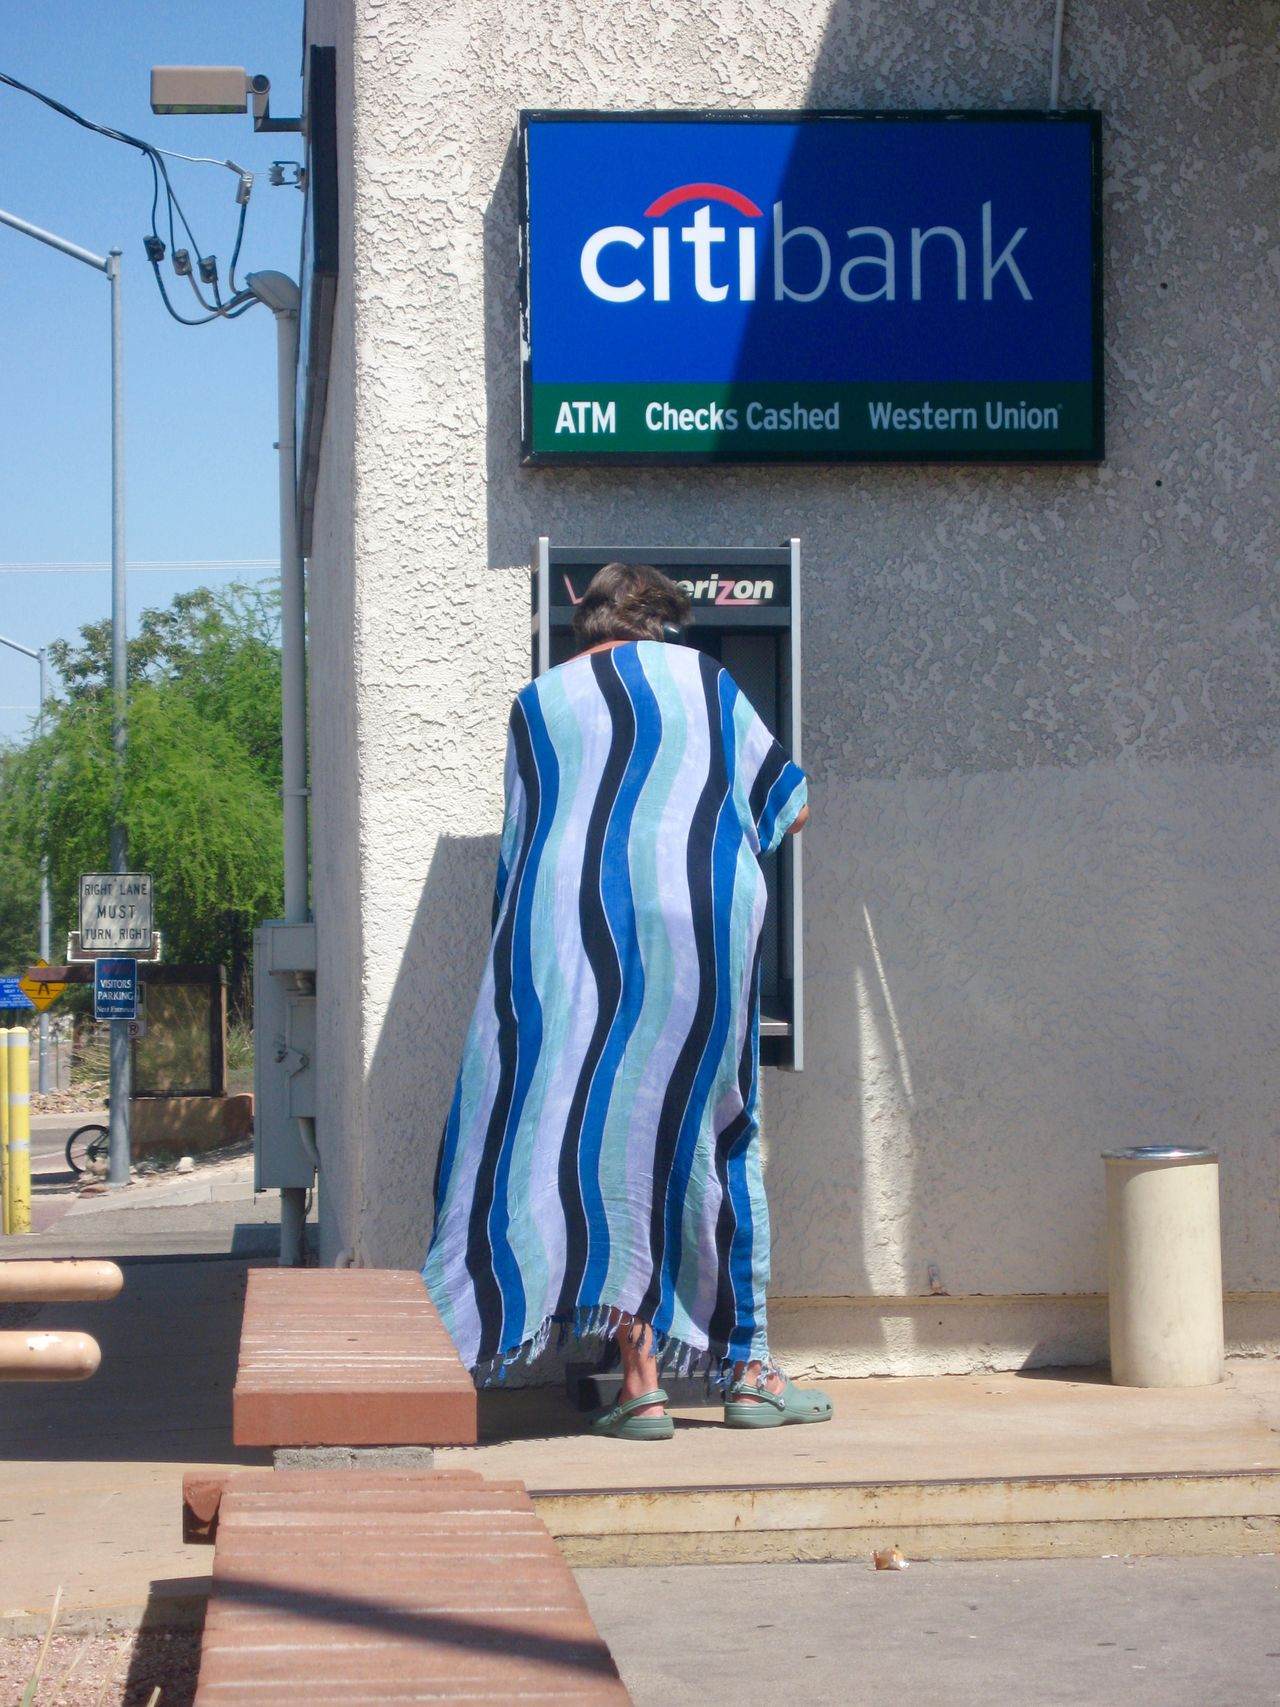 Arizona Atm Bank Banks Cash Cashmoney  Cashpoint Cashpoint Machine Citibank Dollars Money